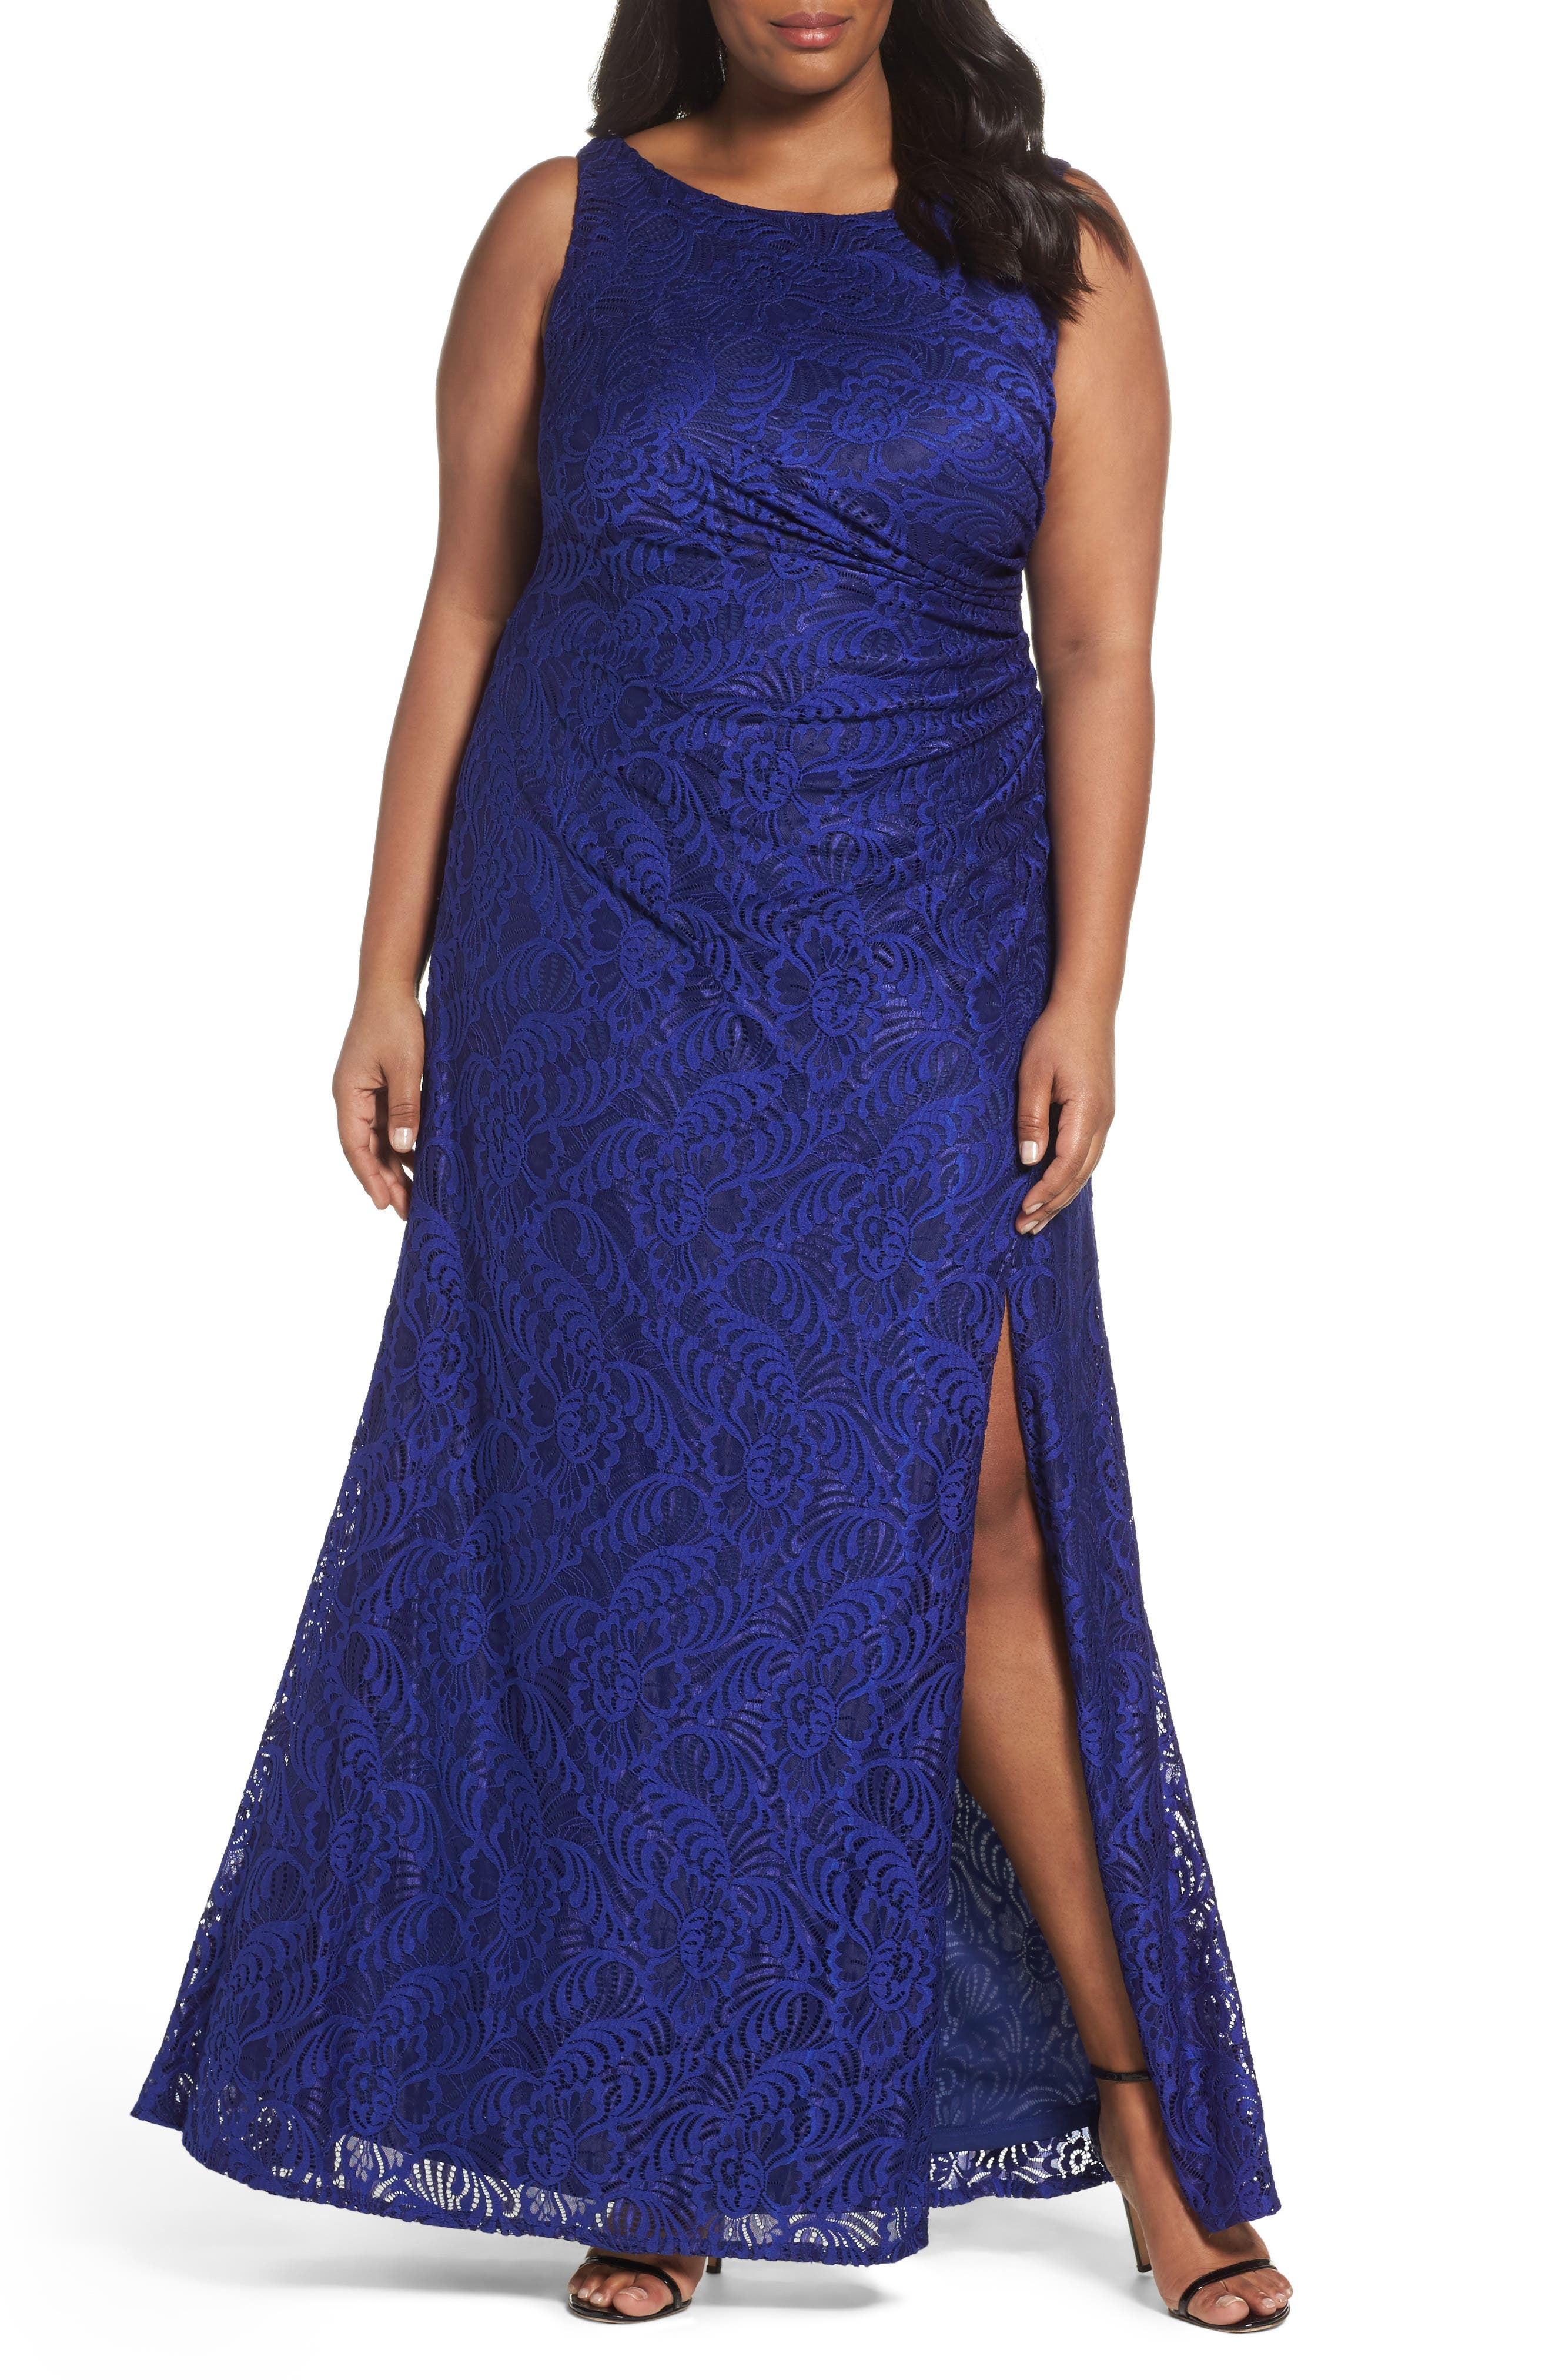 Alternate Image 1 Selected - Adrianna Papell Cowl Back Stretch Lace Gown (Plus Size)